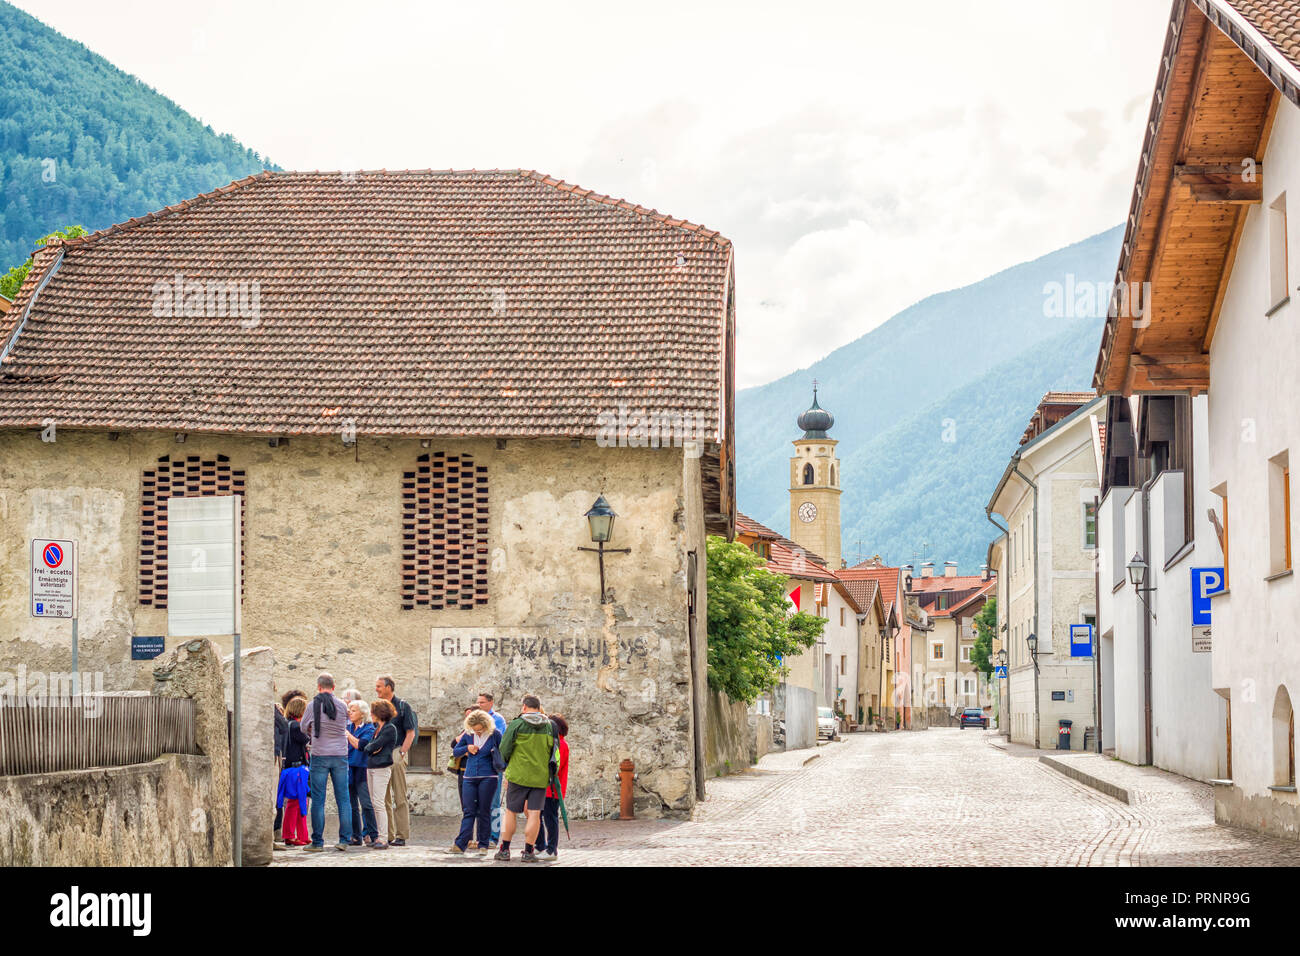 The historic town of Glorenza/Glurns in the south of Malles/Mals is one of the smallest cities in the world. Trentino Alto Adige/South Tyrol - Italy - Stock Image